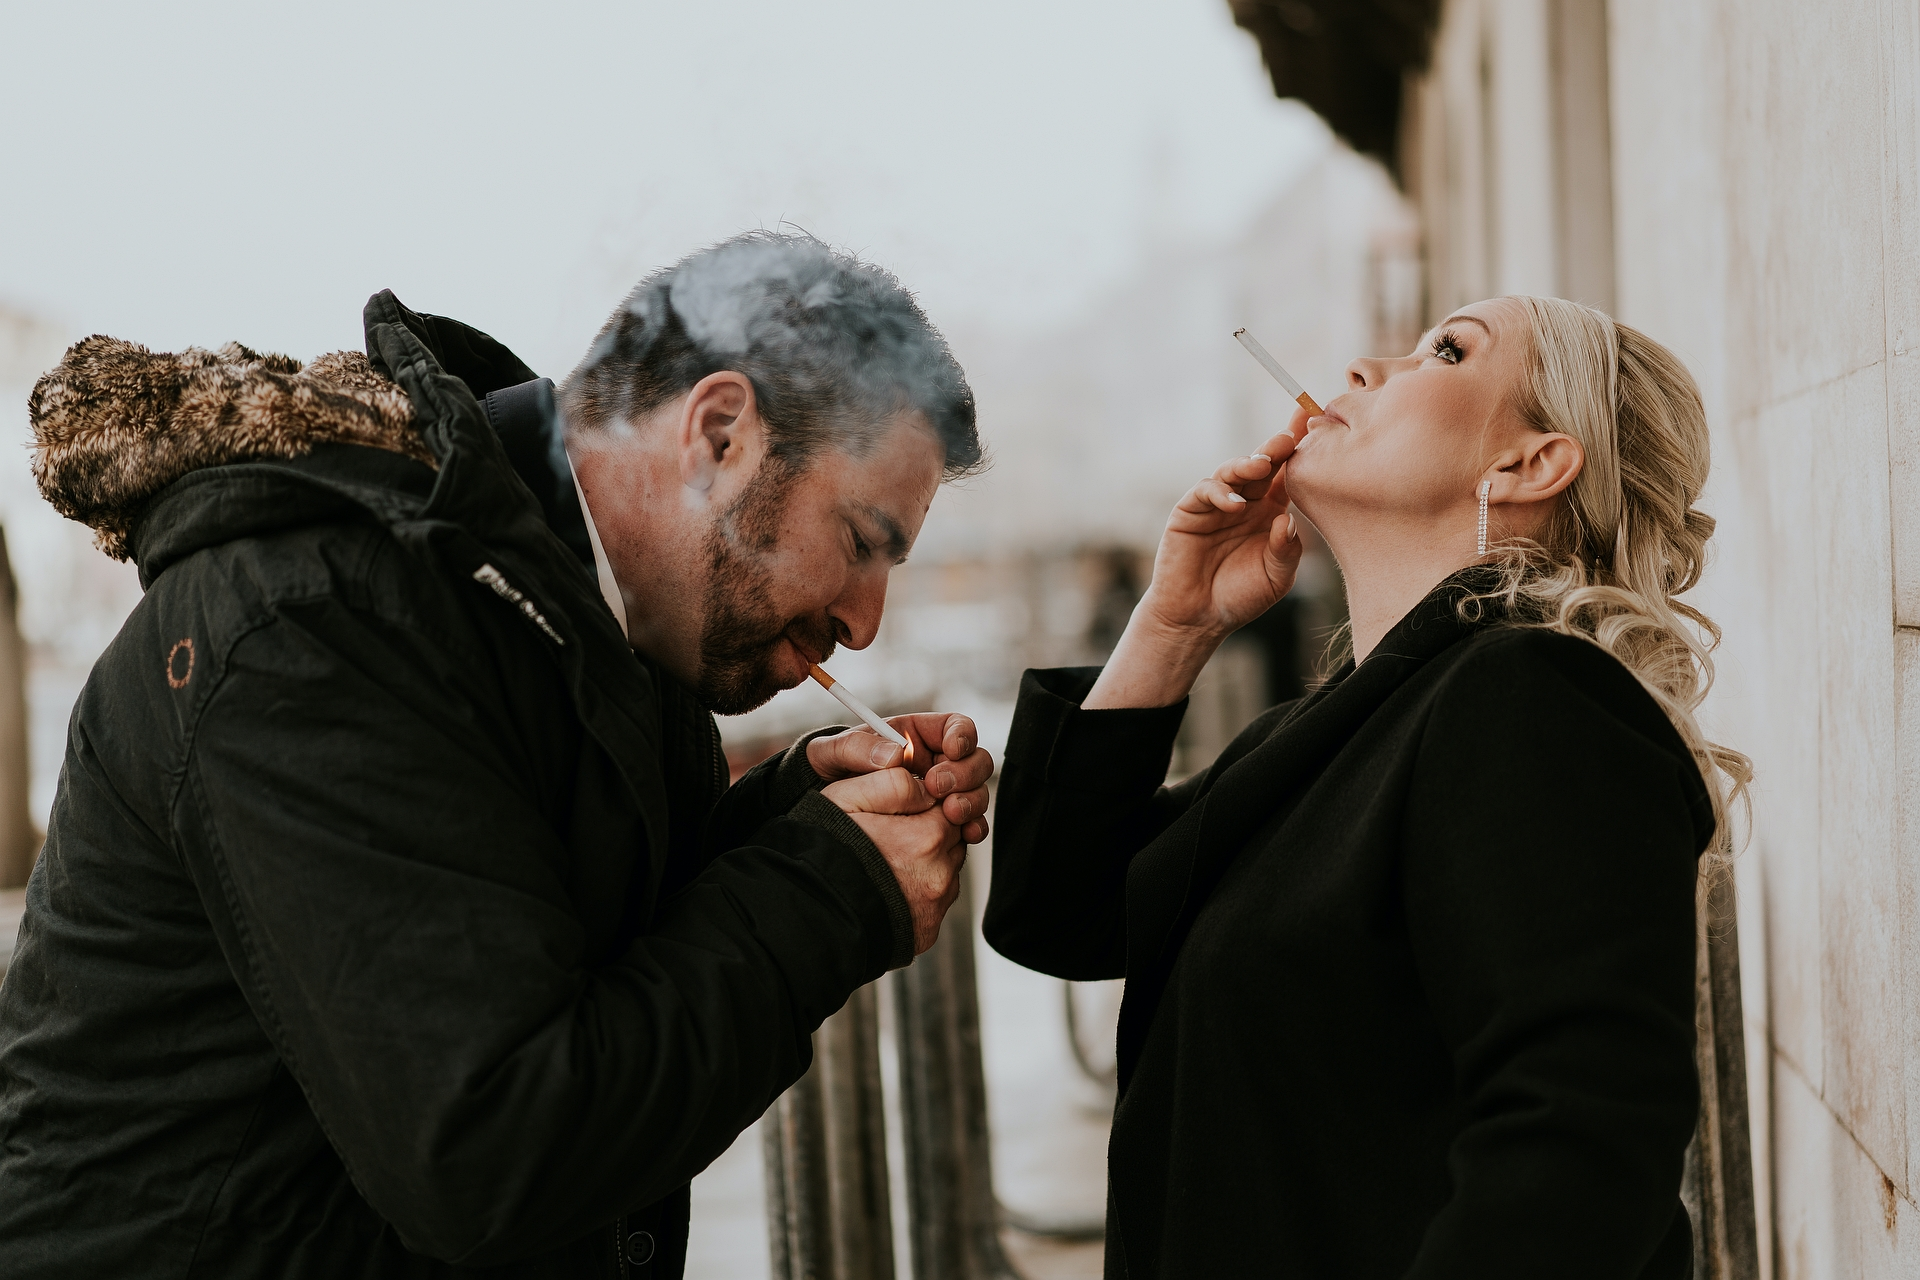 Venice Wedding Photographer for Elopements | The bride and groom wear coats to shelter from the cold